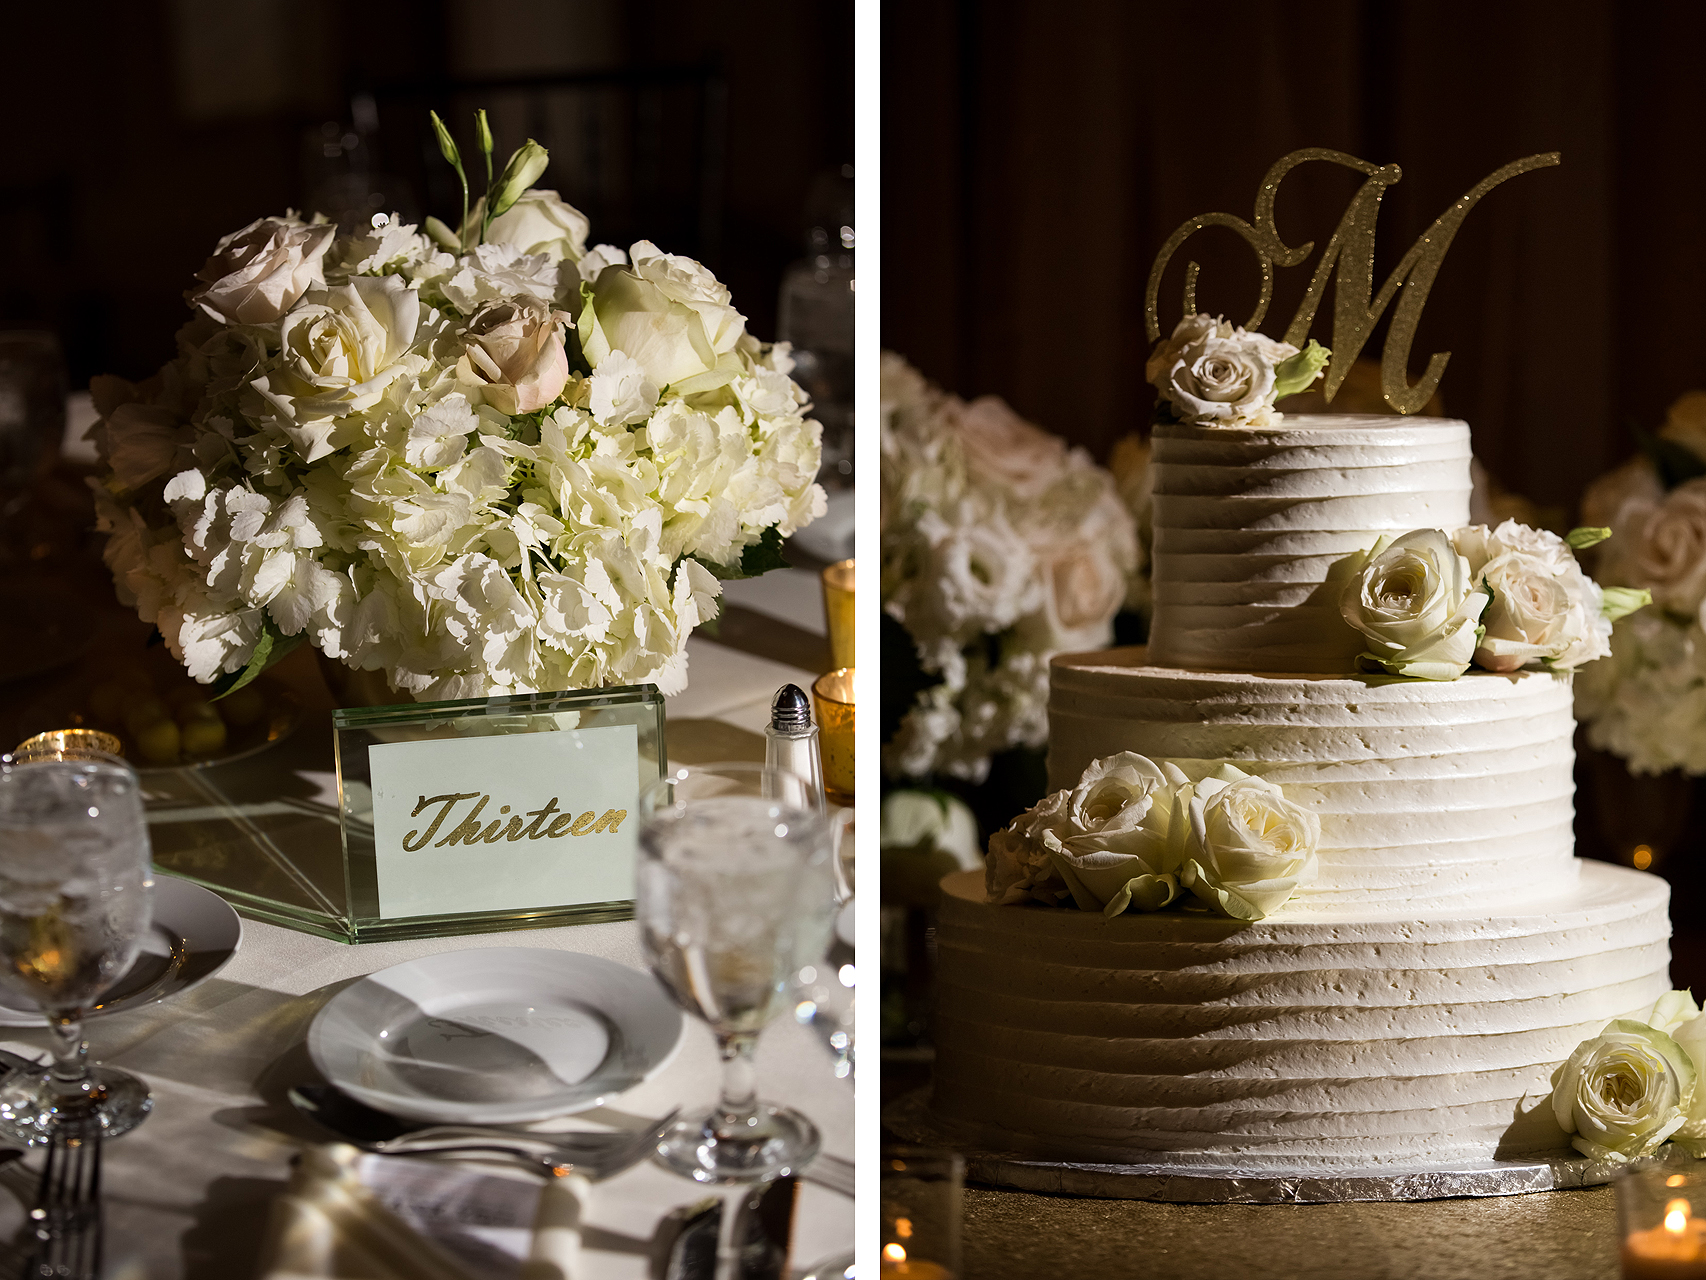 Wedding floral arrangement and cake with gold accents at the Baltimore Belvedere Hotel